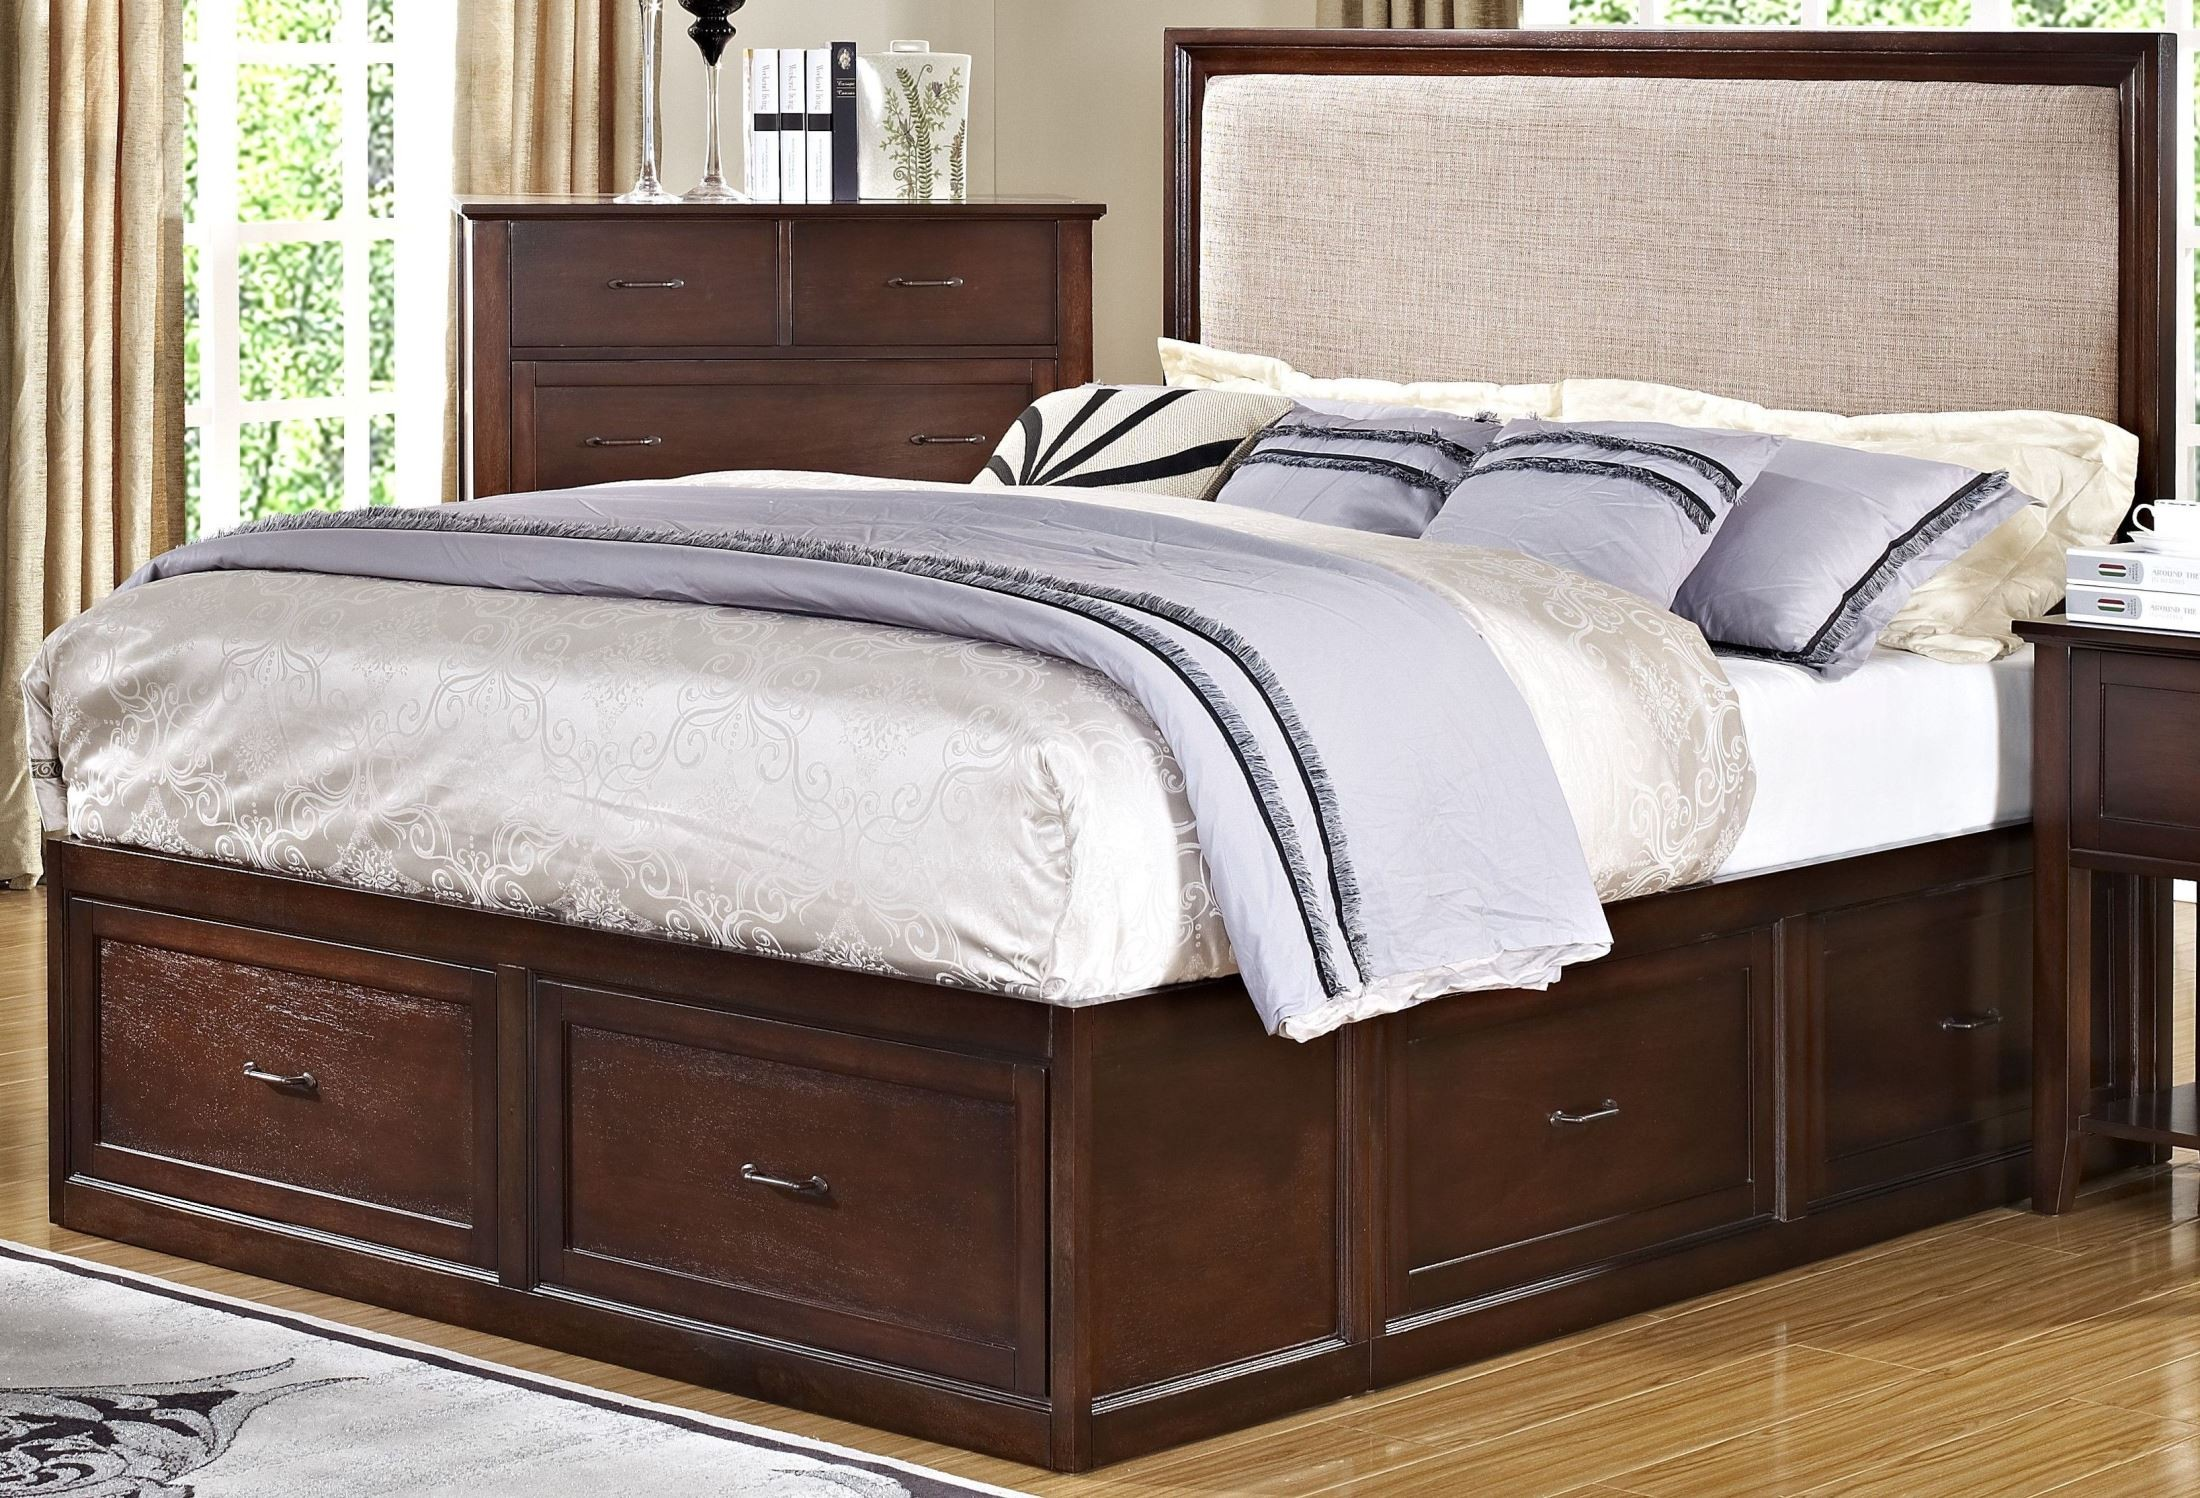 serenity african chestnut storage bedroom set from new